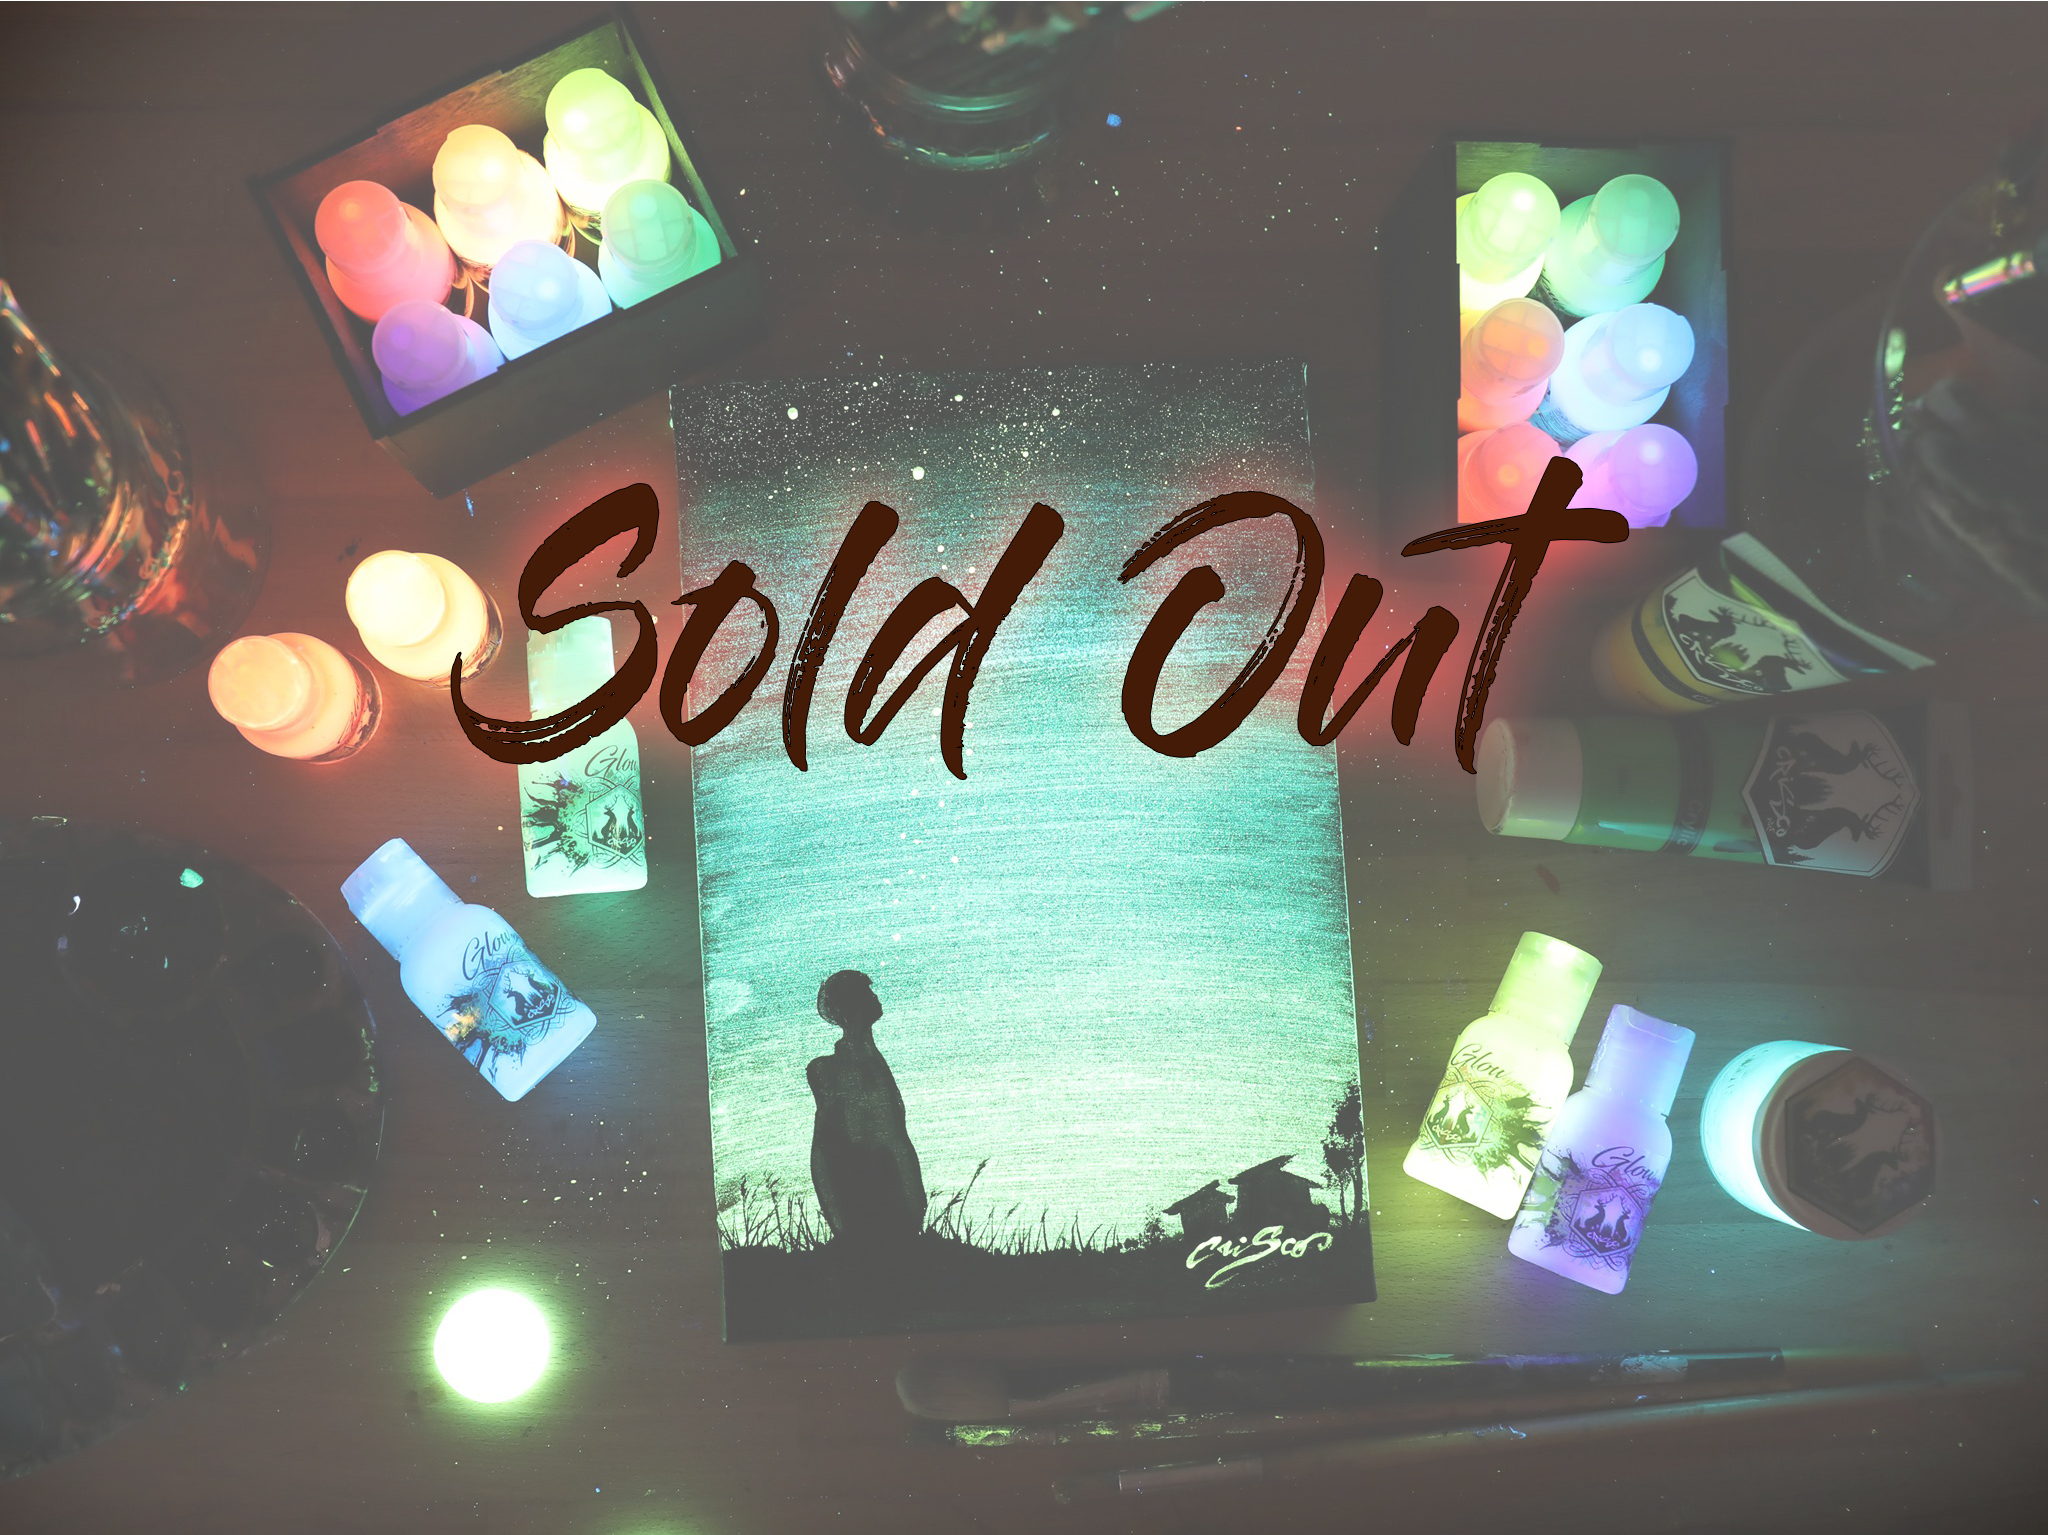 sold out filexxxxxx